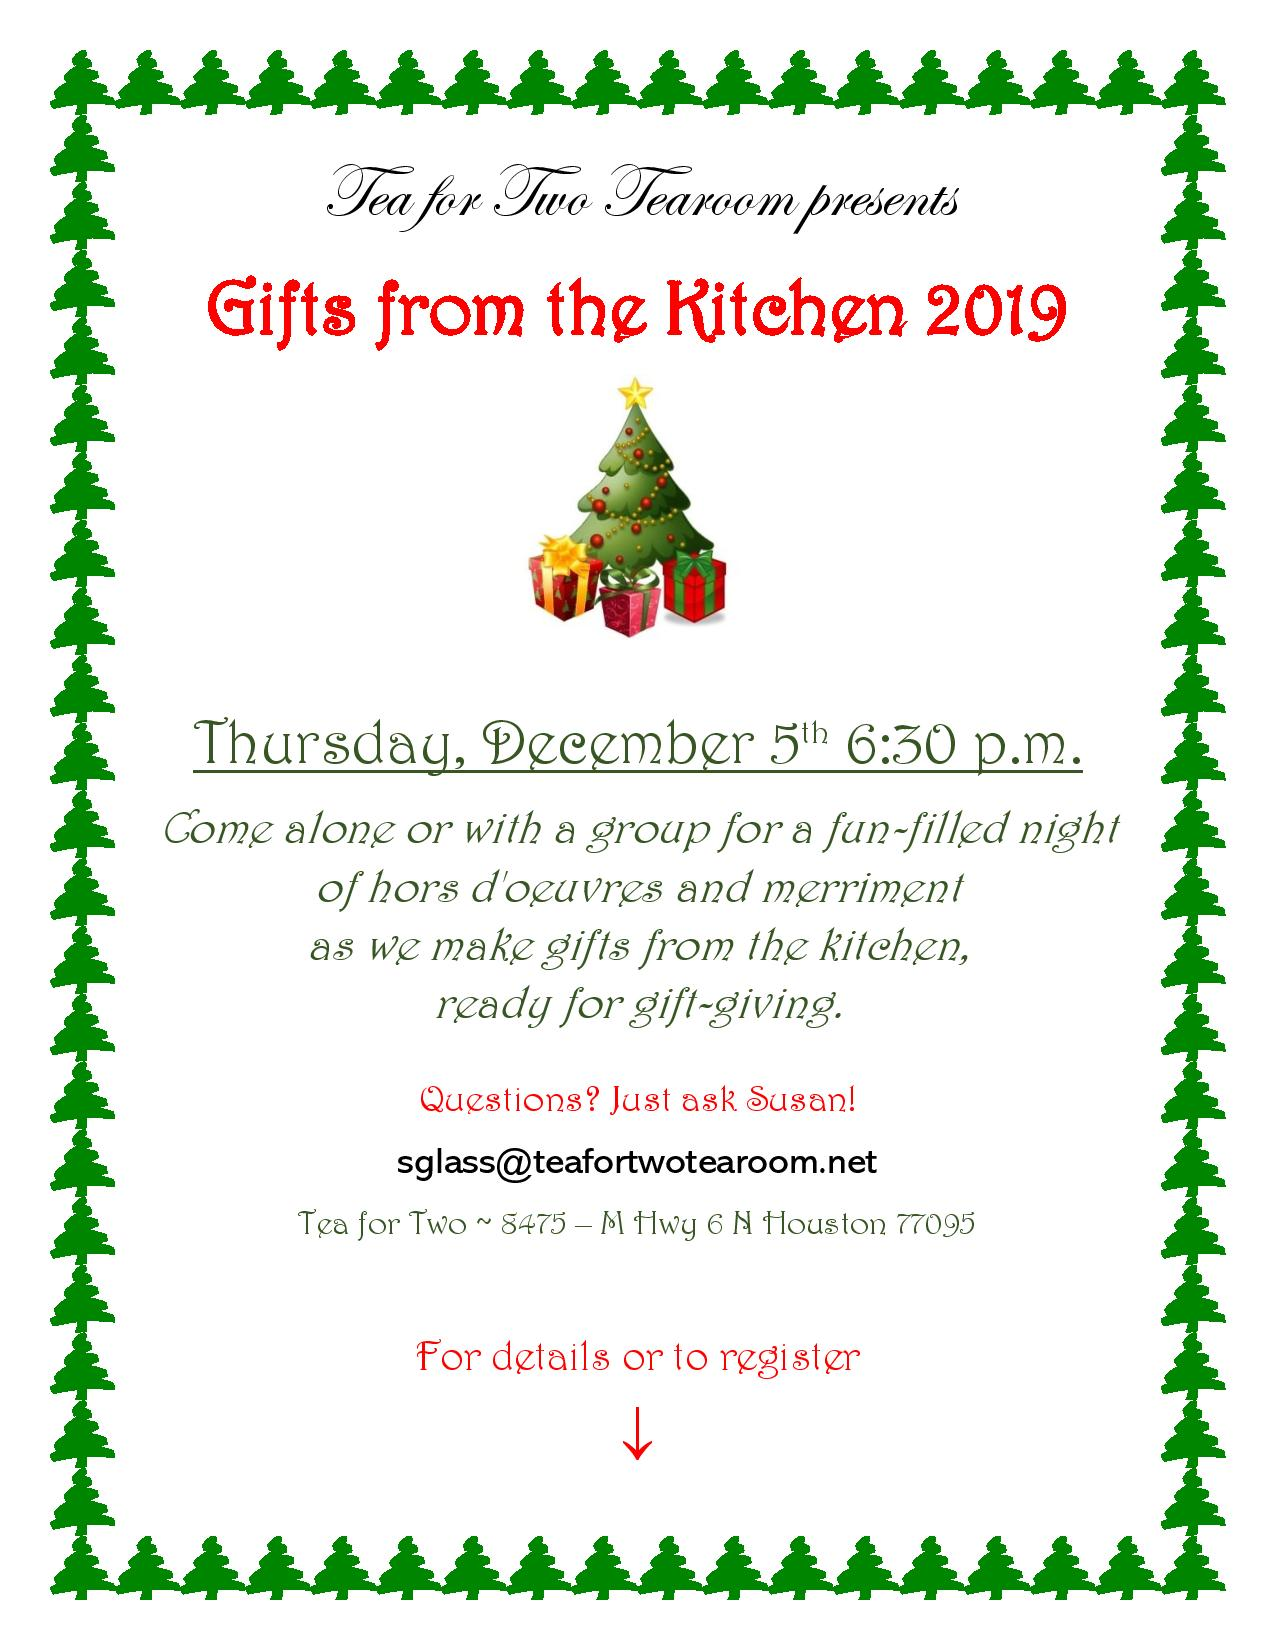 Tea for Two presents, Gifts from the Kitchen 2019. Thursday, December 5th at 6:30 PM.